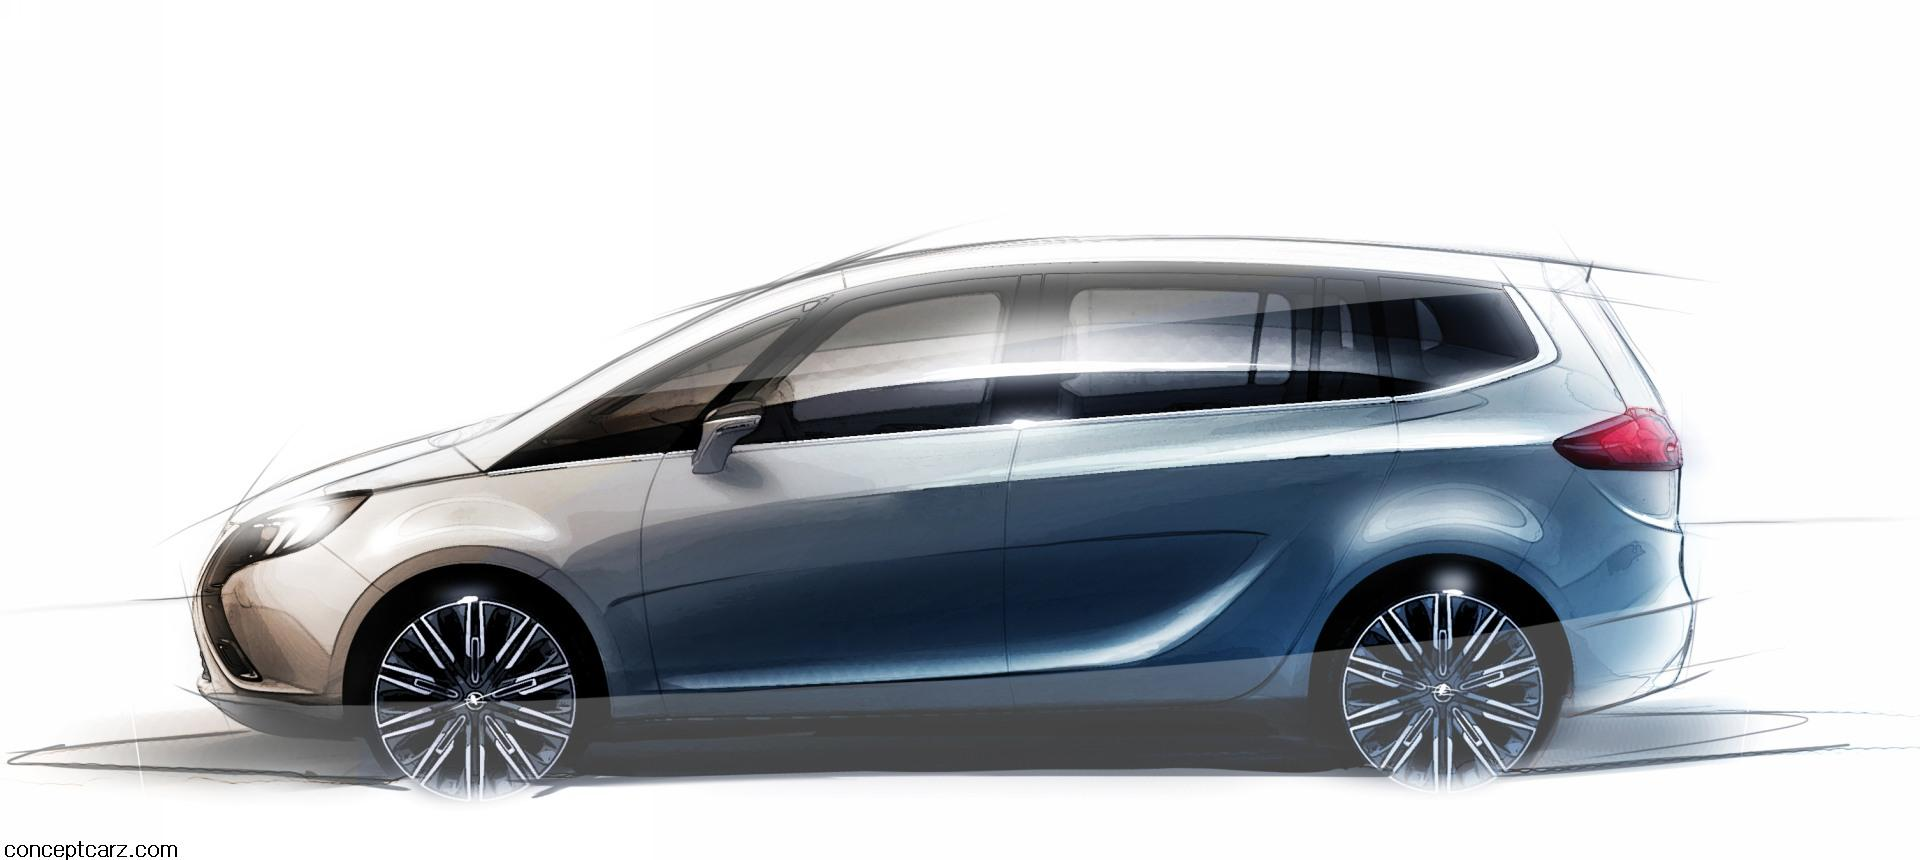 2011 opel zafira tourer concept news and information. Black Bedroom Furniture Sets. Home Design Ideas